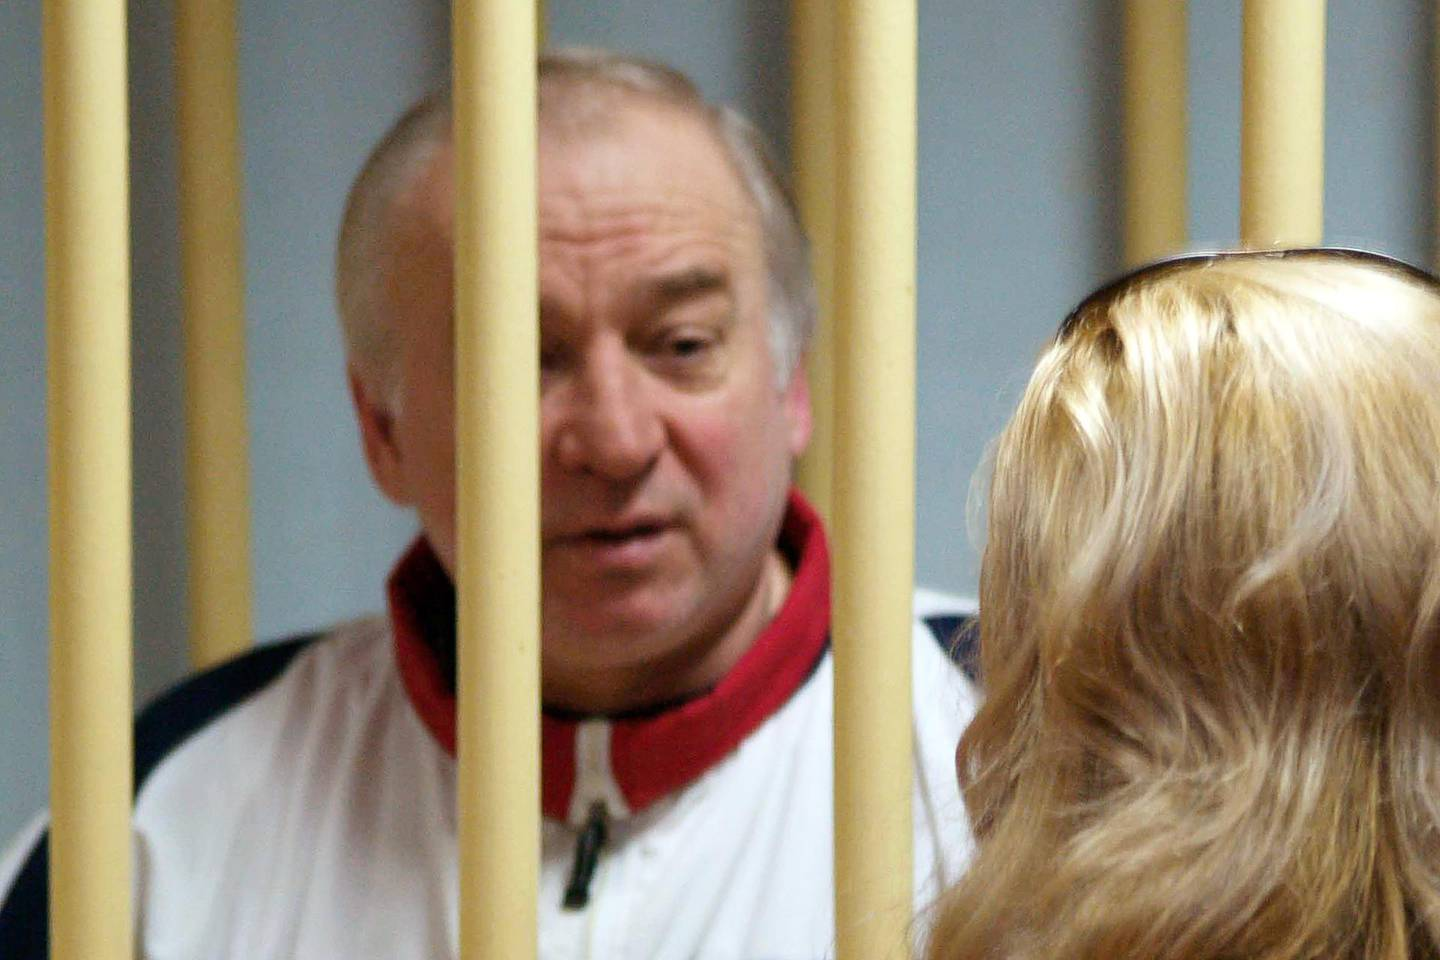 """(FILES) In this file photo taken on August 09, 2006 Former Russian military intelligence colonel Sergei Skripal attends a hearing at the Moscow District Military Court in Moscow on August 9, 2006. The former Russian spy who was found slumped in an English town following a poison attack that Britain blames on Moscow is """"improving rapidly,"""" the hospital treating him said on April 6, 2018. Salisbury District Hospital said Skripal was """"responding well to treatment"""" and """"no longer in a critical condition"""".   / AFP PHOTO / Kommersant Photo / Yuri SENATOROV / Russia OUT"""